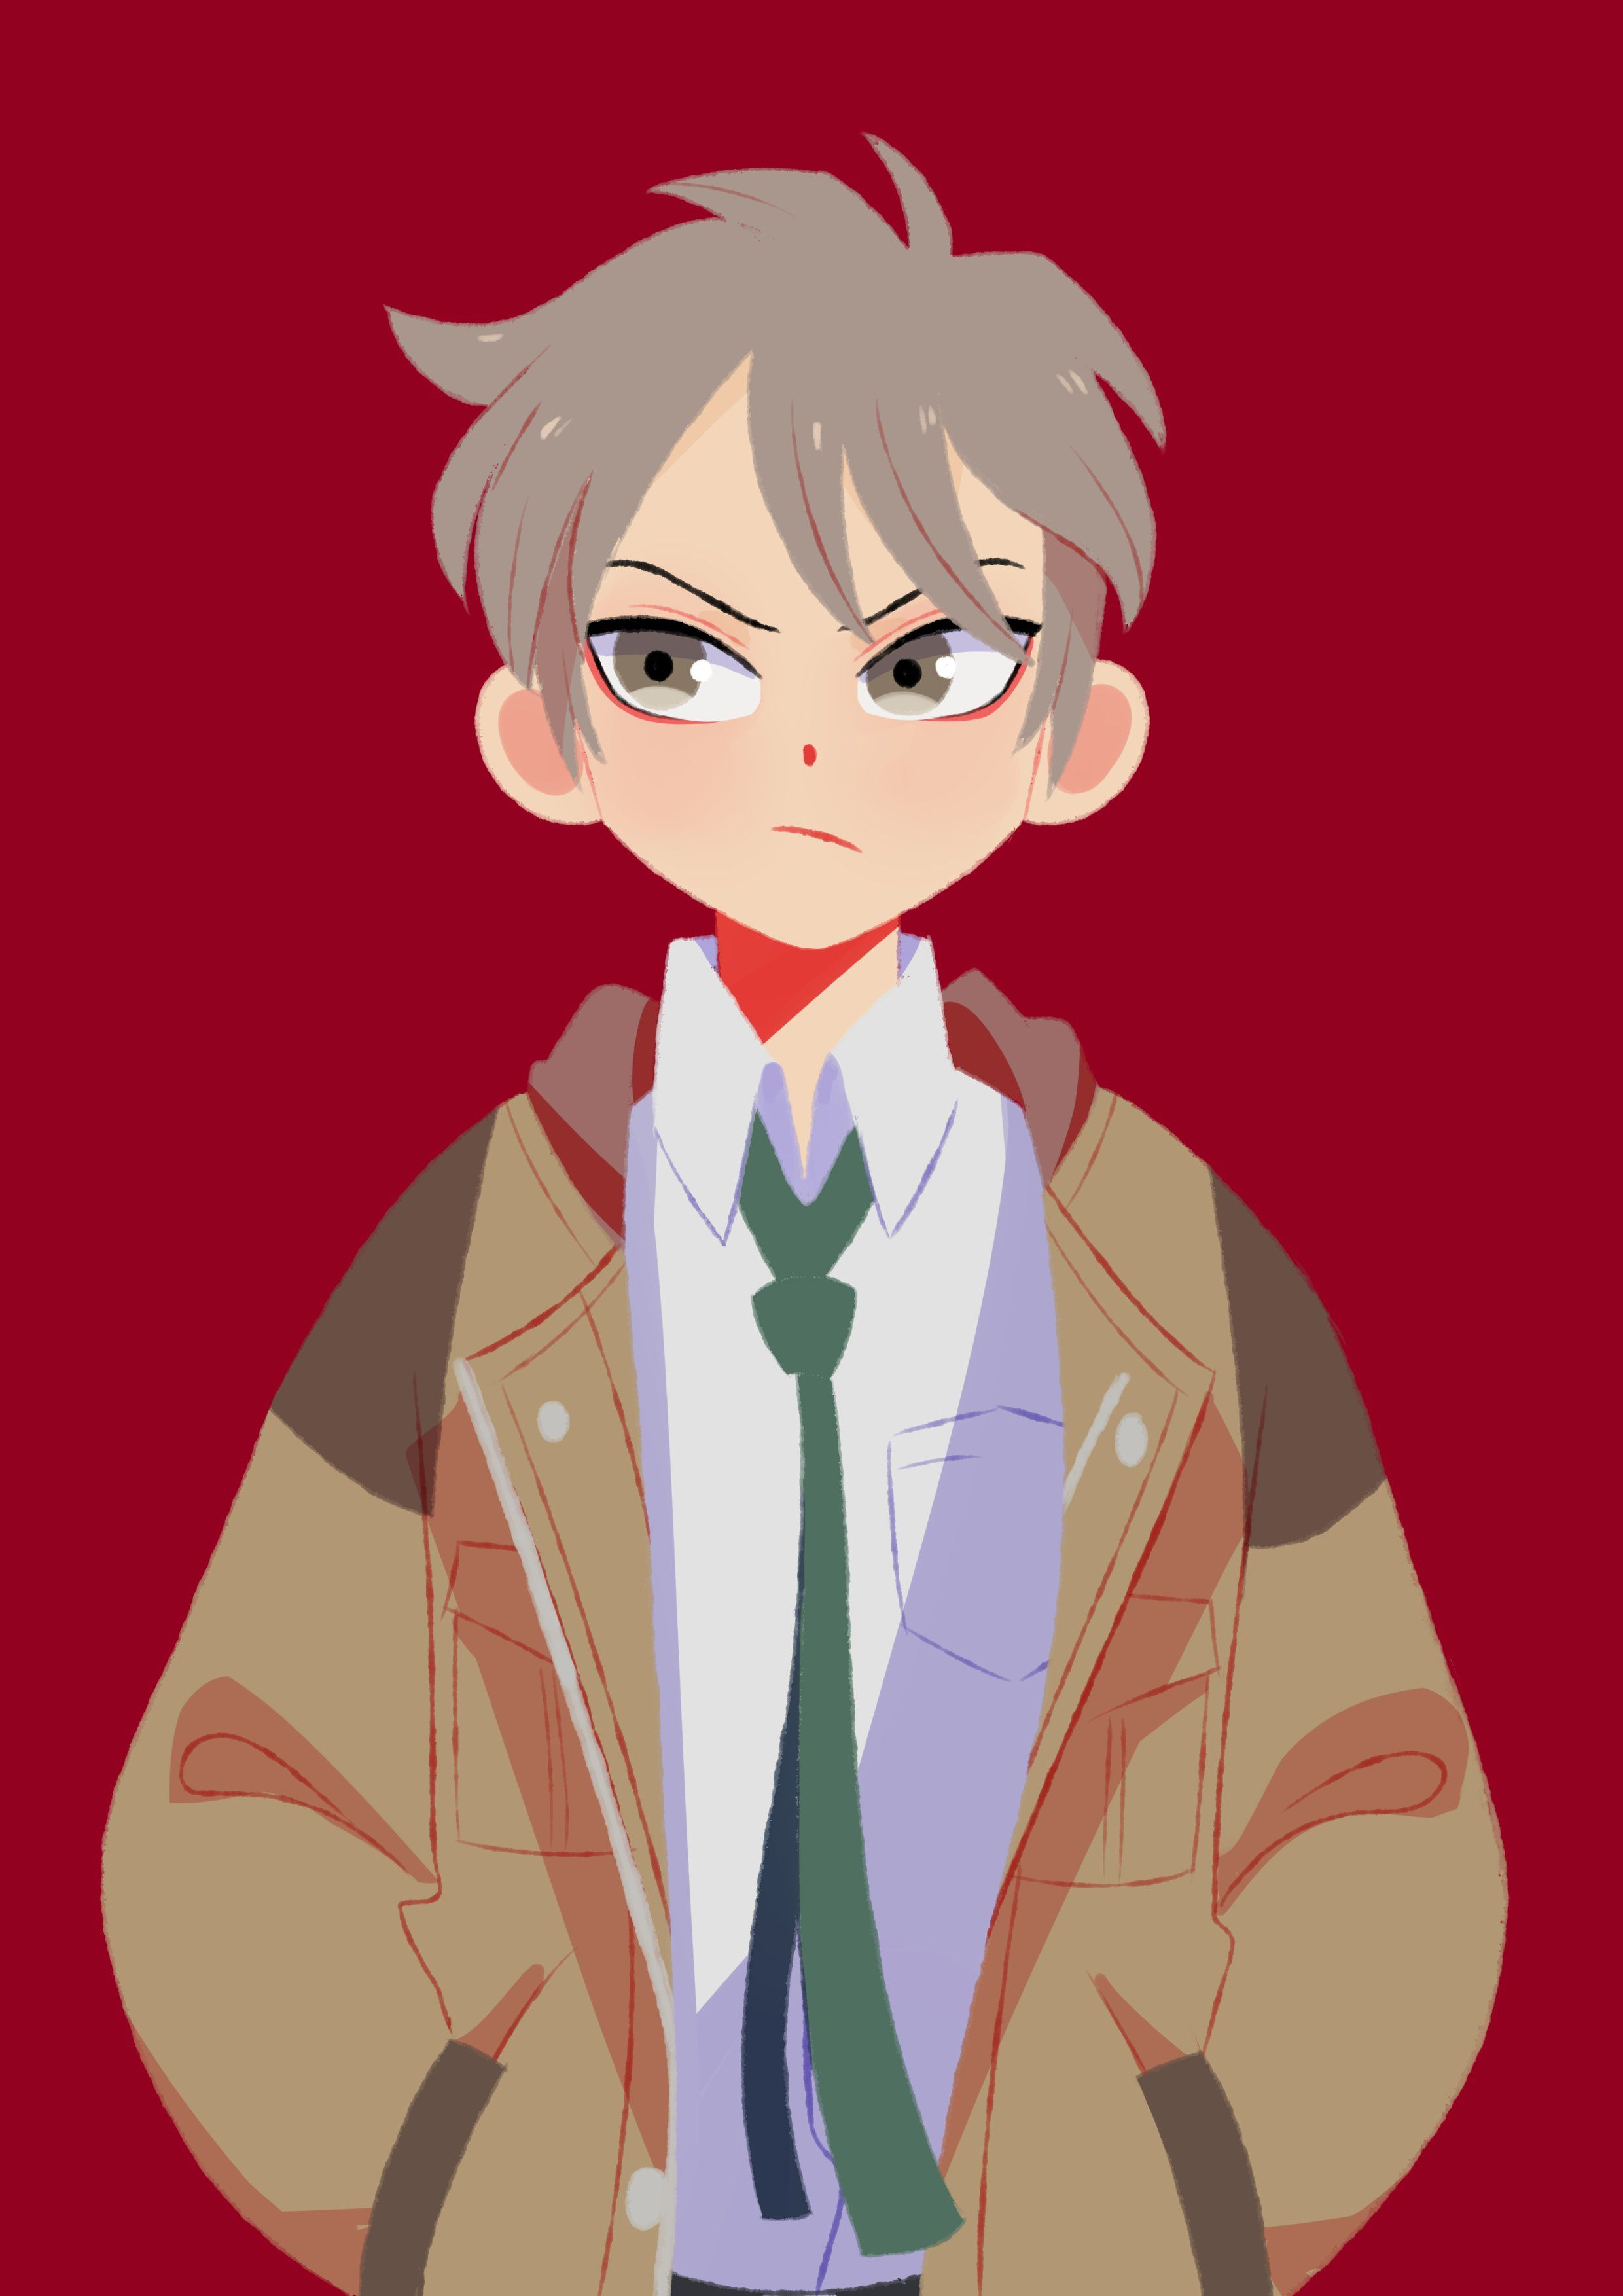 Pin By Bun Saves On Arts With Imagination In 2020 Cute Anime Boy Anime Boy Art